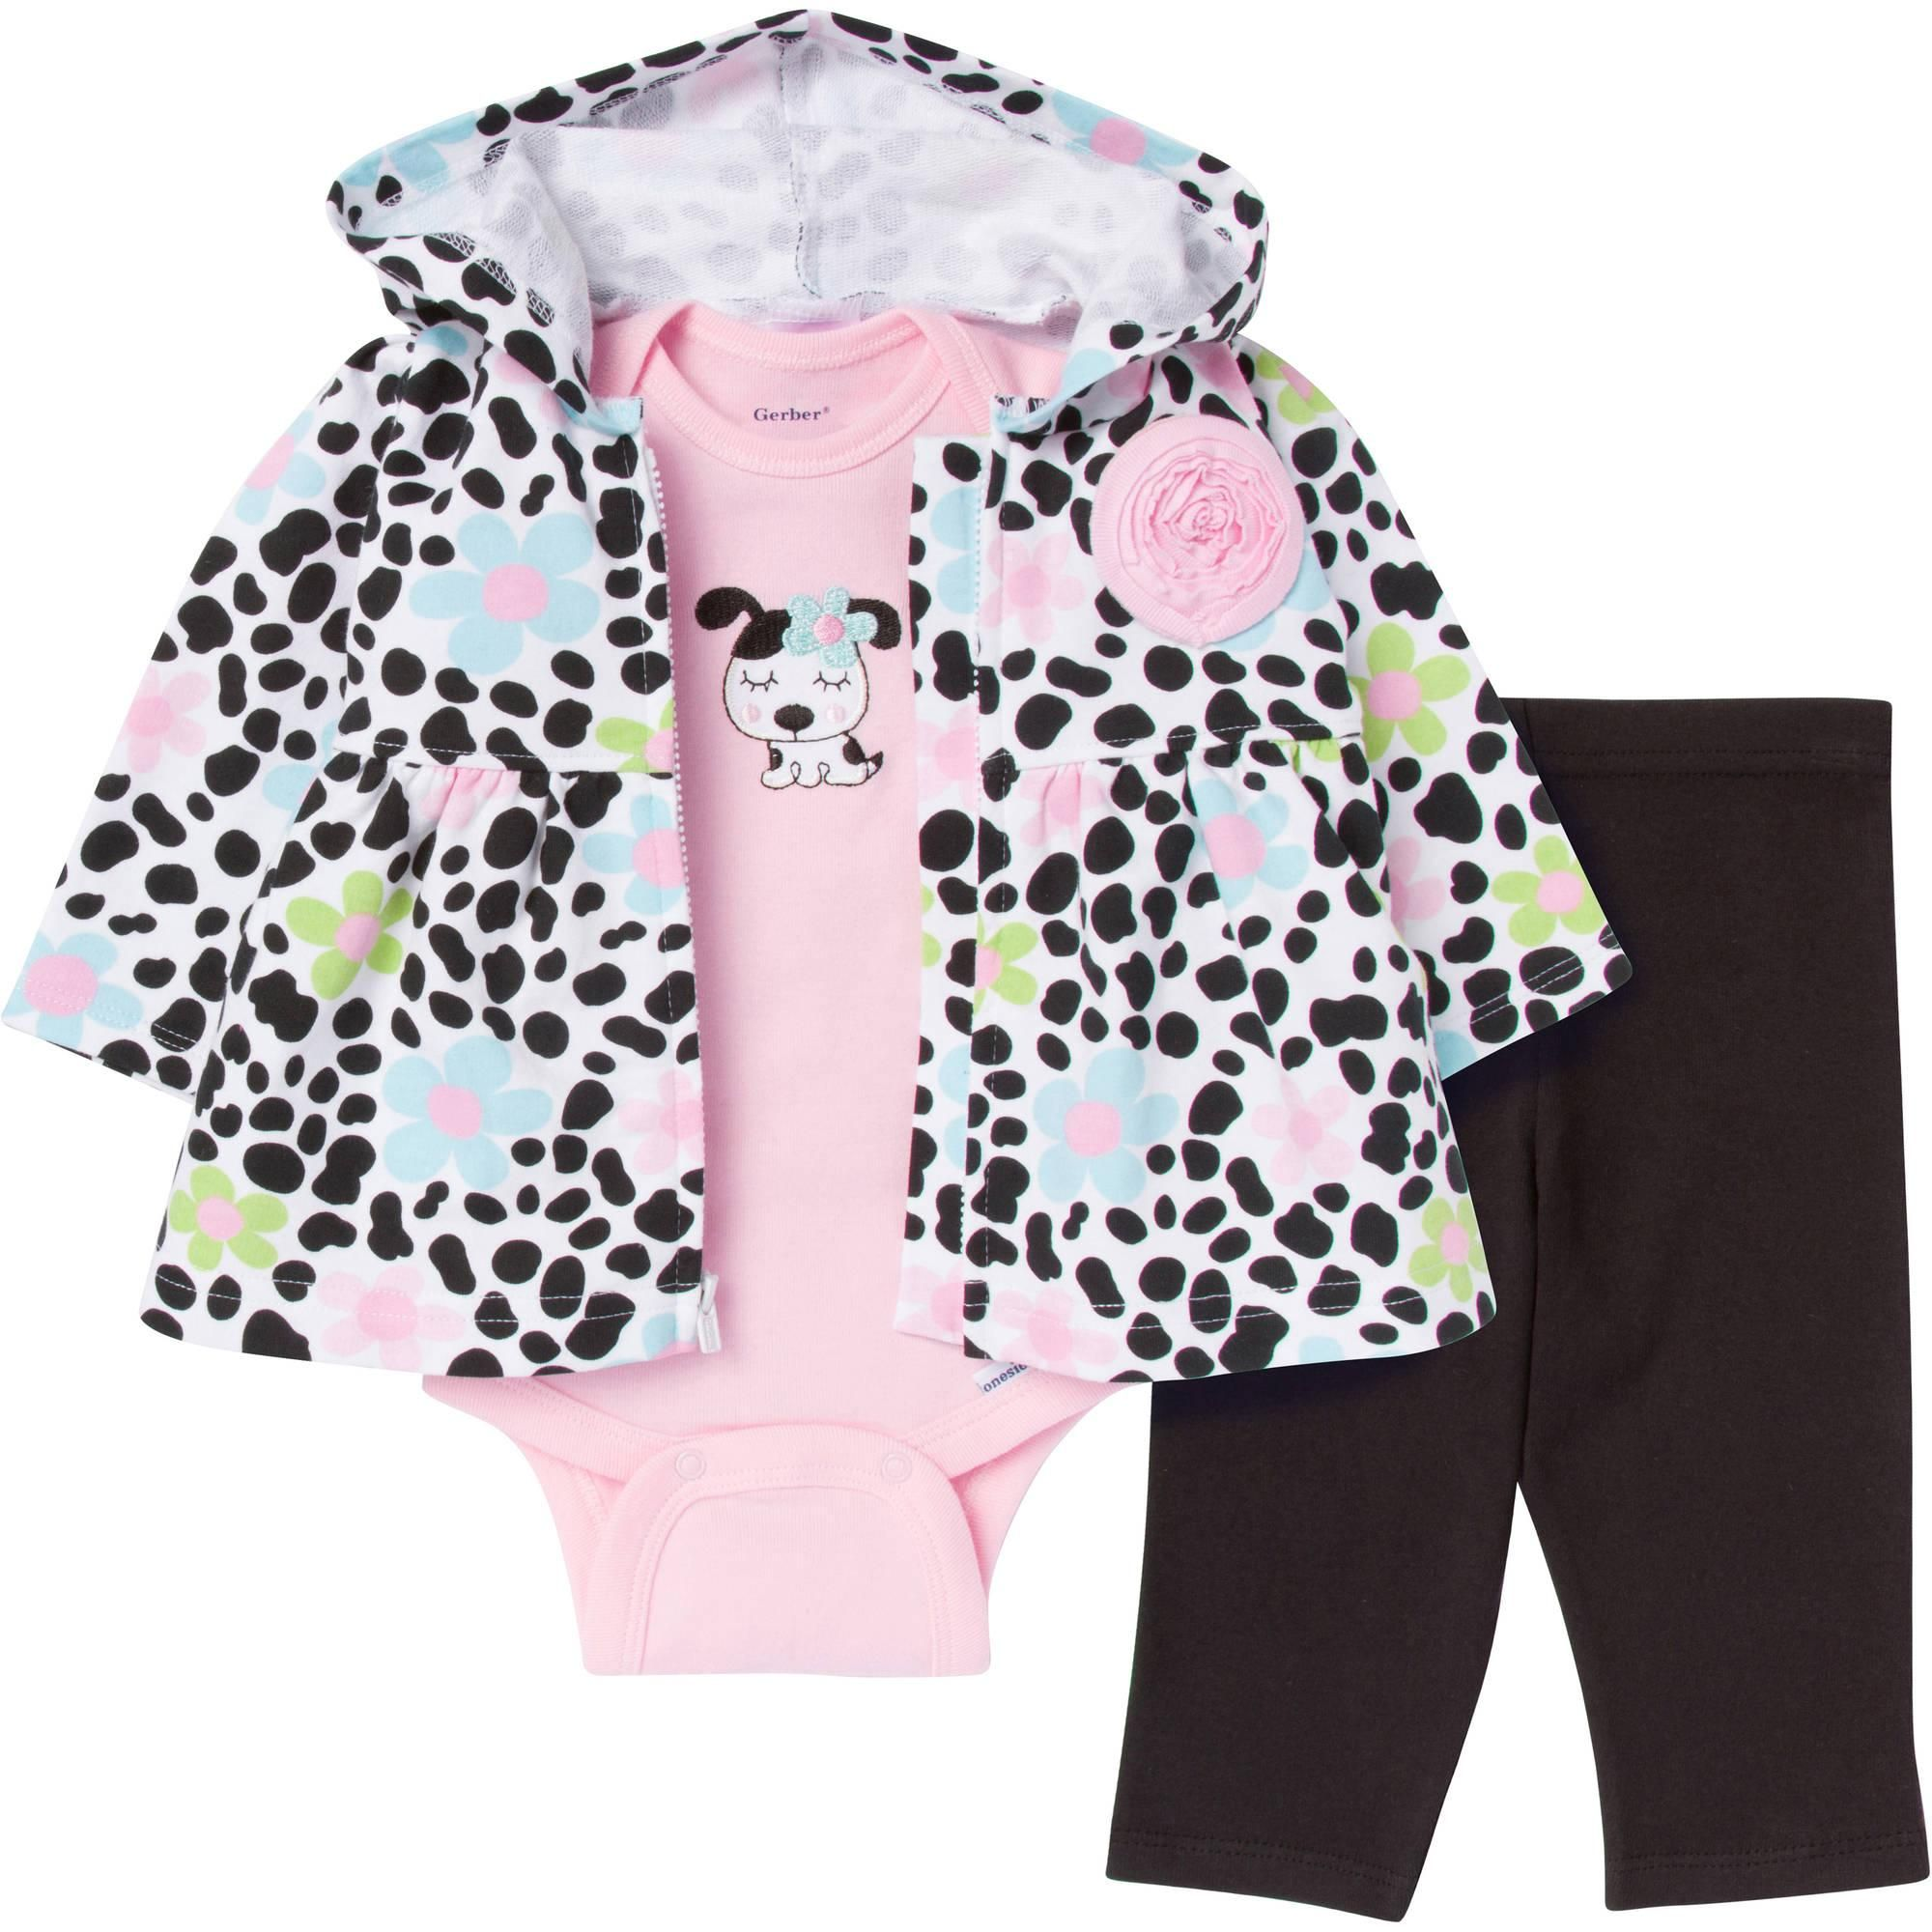 Walmart Baby Girl Clothes Baby Girl Clothes  Baby & Toddler  Walmart  Baby Stuff